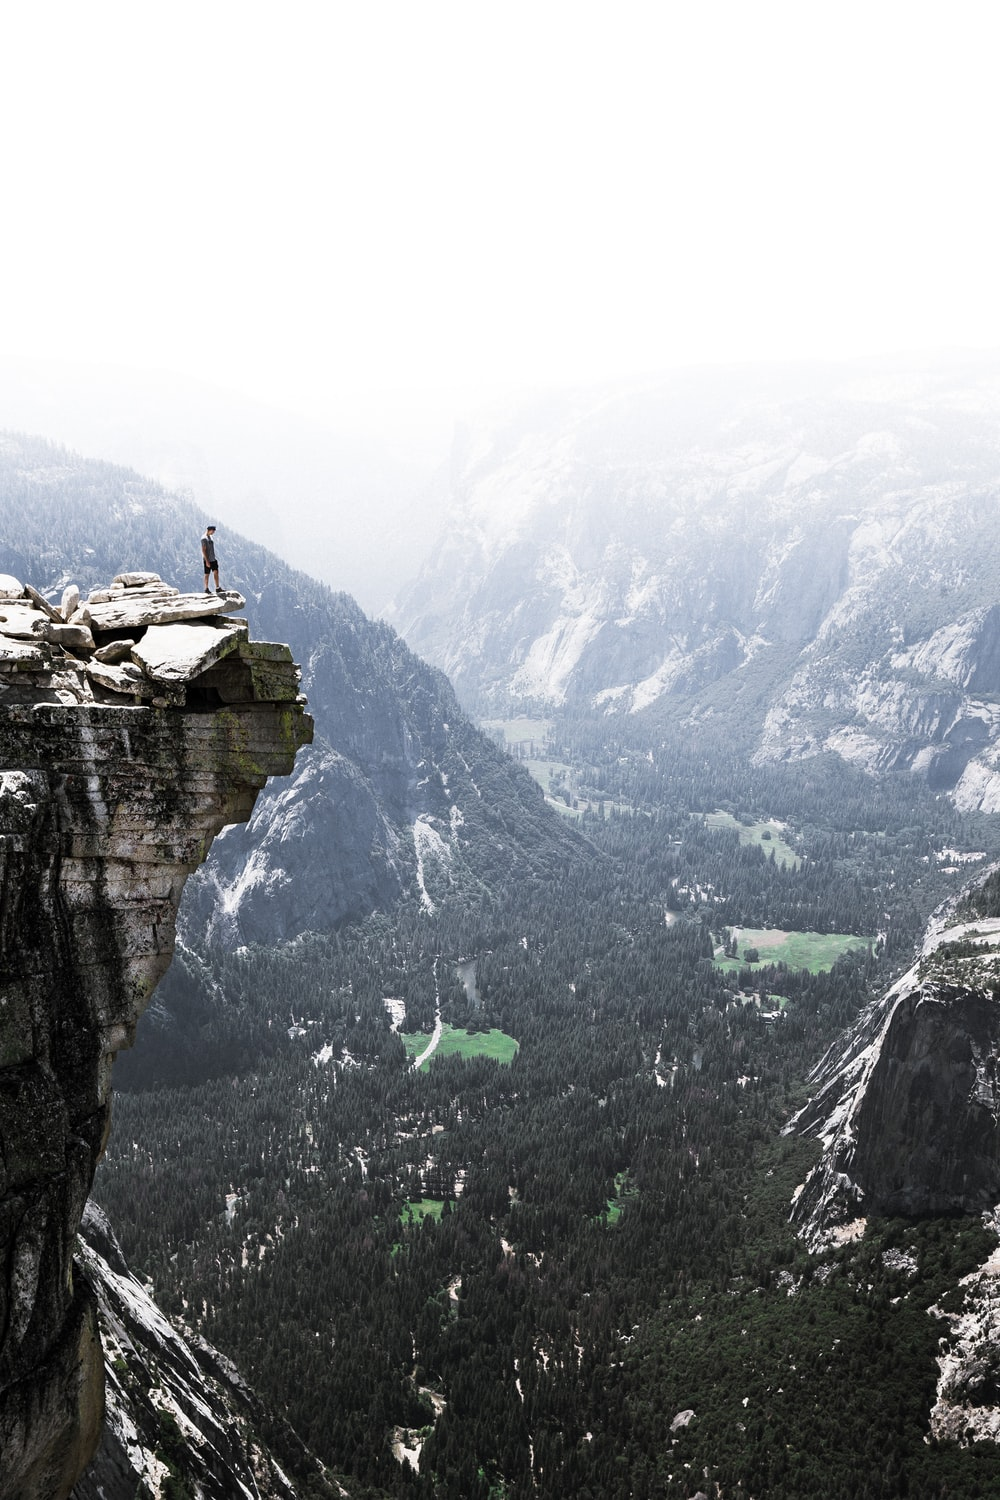 man on mountain cliff